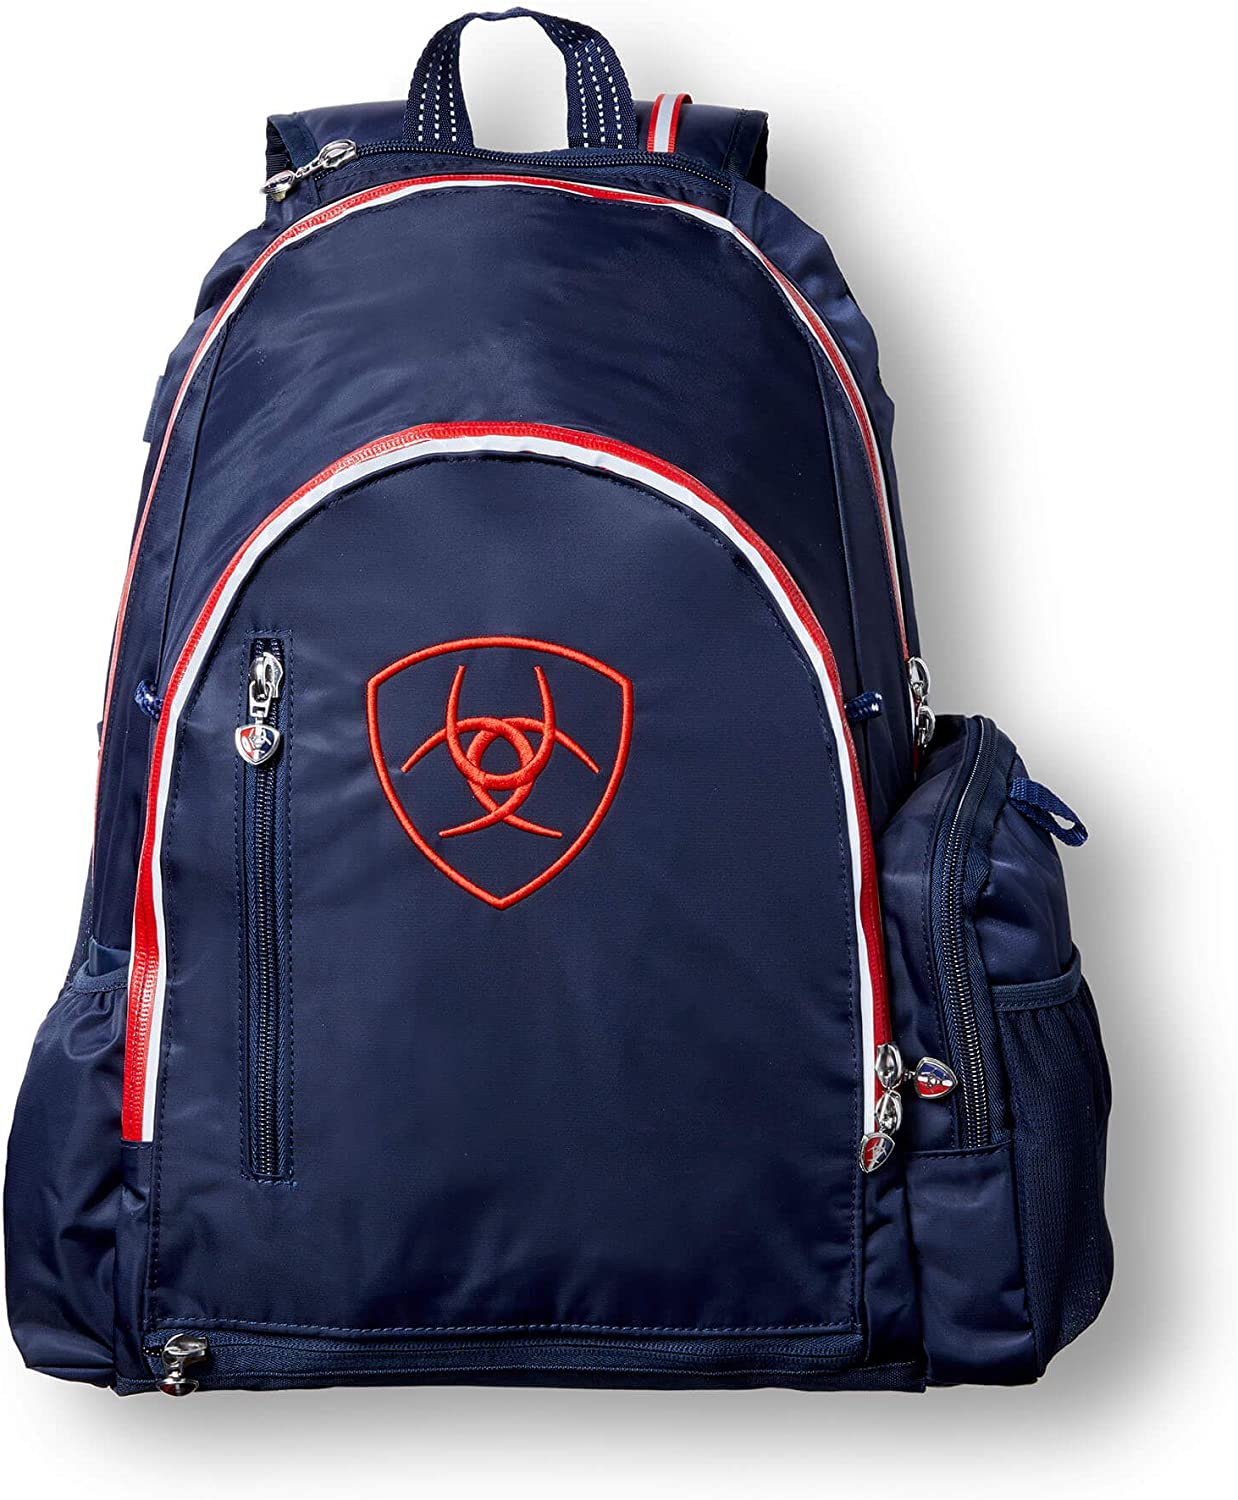 Ariat Unisex Ring Backpack